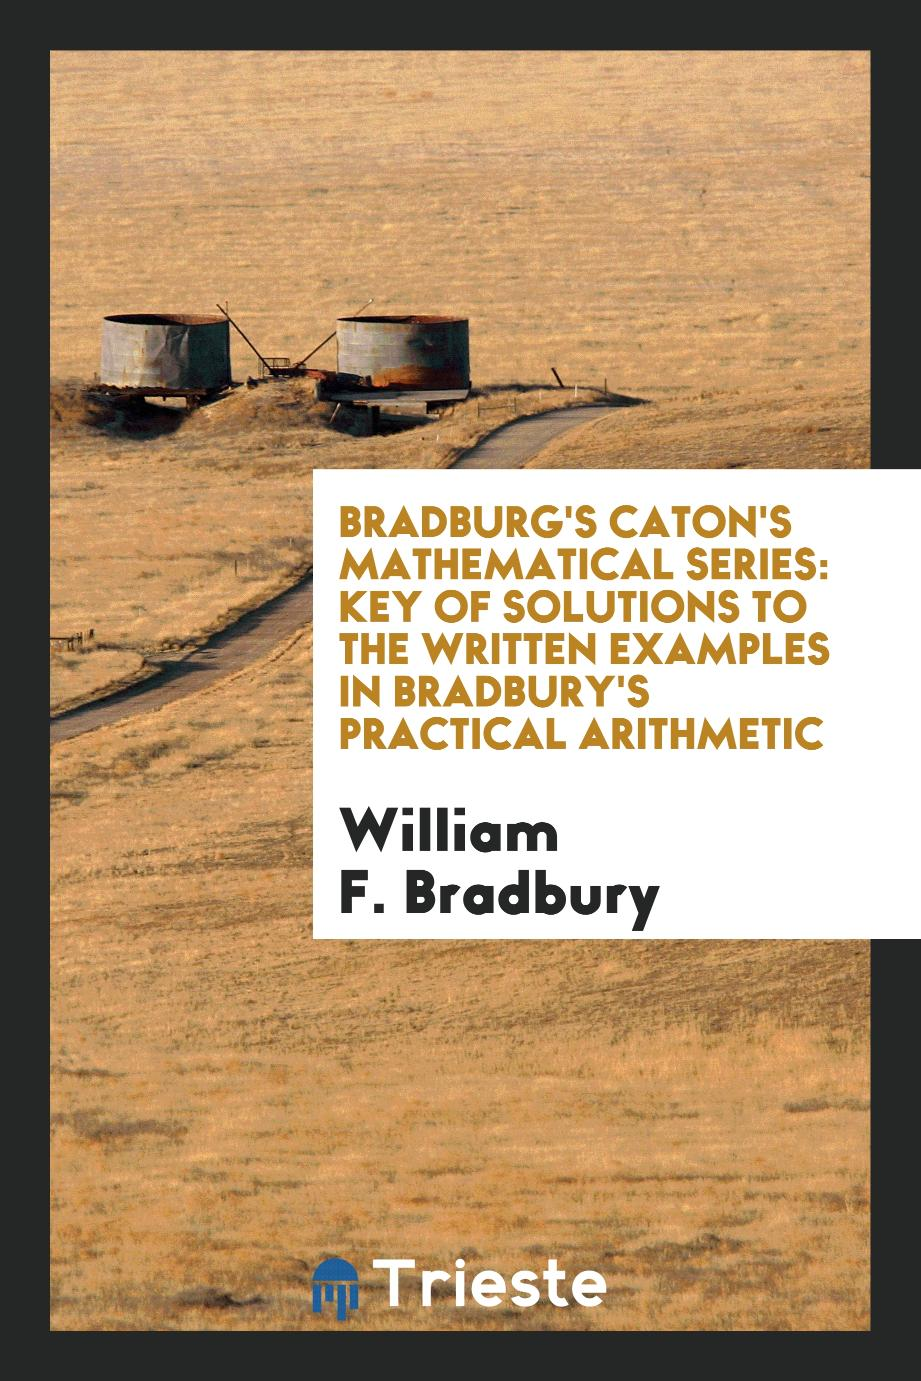 Bradburg's Caton's Mathematical Series: Key of Solutions to the Written Examples in Bradbury's Practical Arithmetic